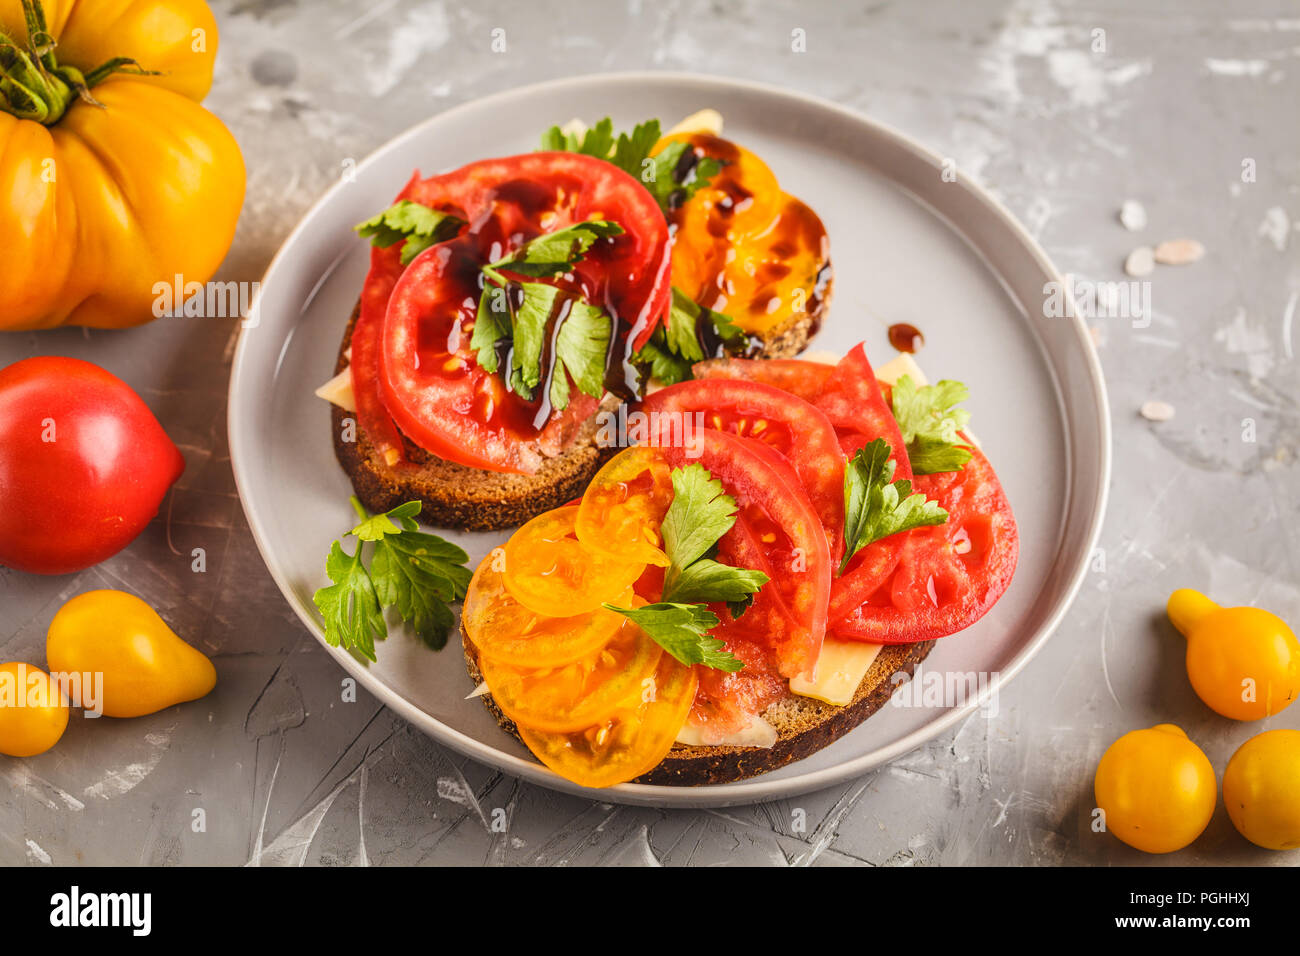 Sandwiches with tomatoes and cheese on gray plate, top view. Clean eating concept. Stock Photo